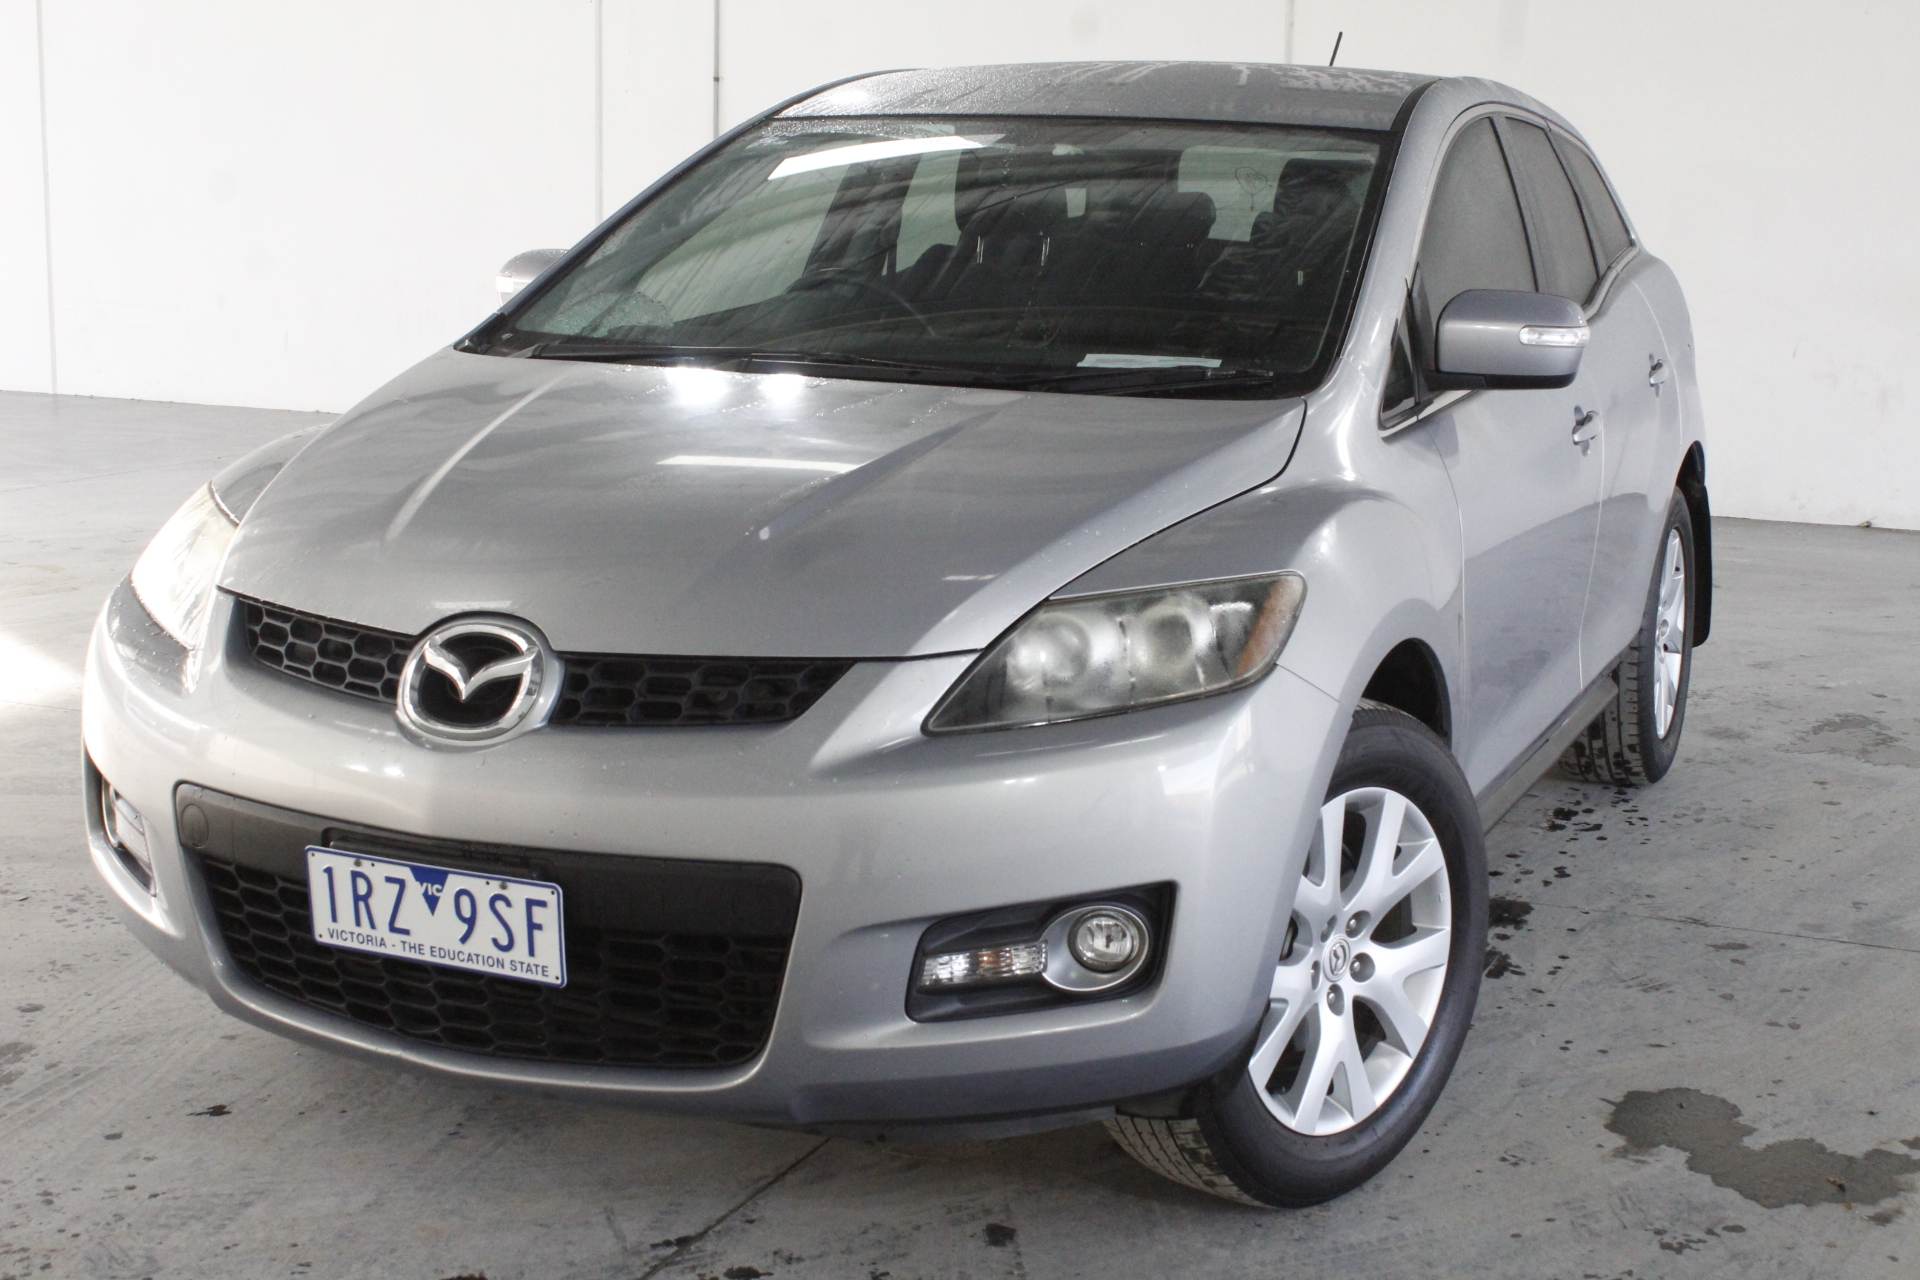 2006 Mazda CX-7 (4x4) Automatic Wagon